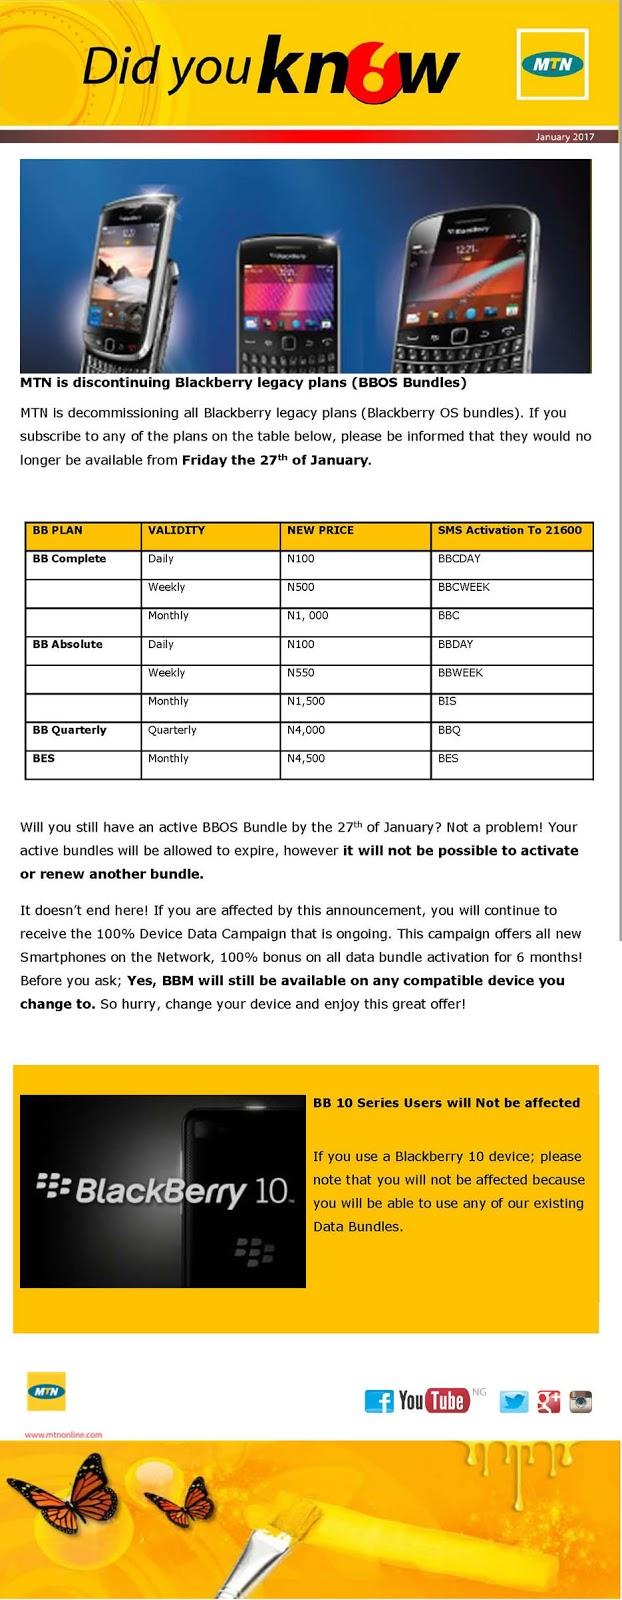 Photo of MTN to ends BBOS bundles from tomorrow 27th, BB10 bundles not affected